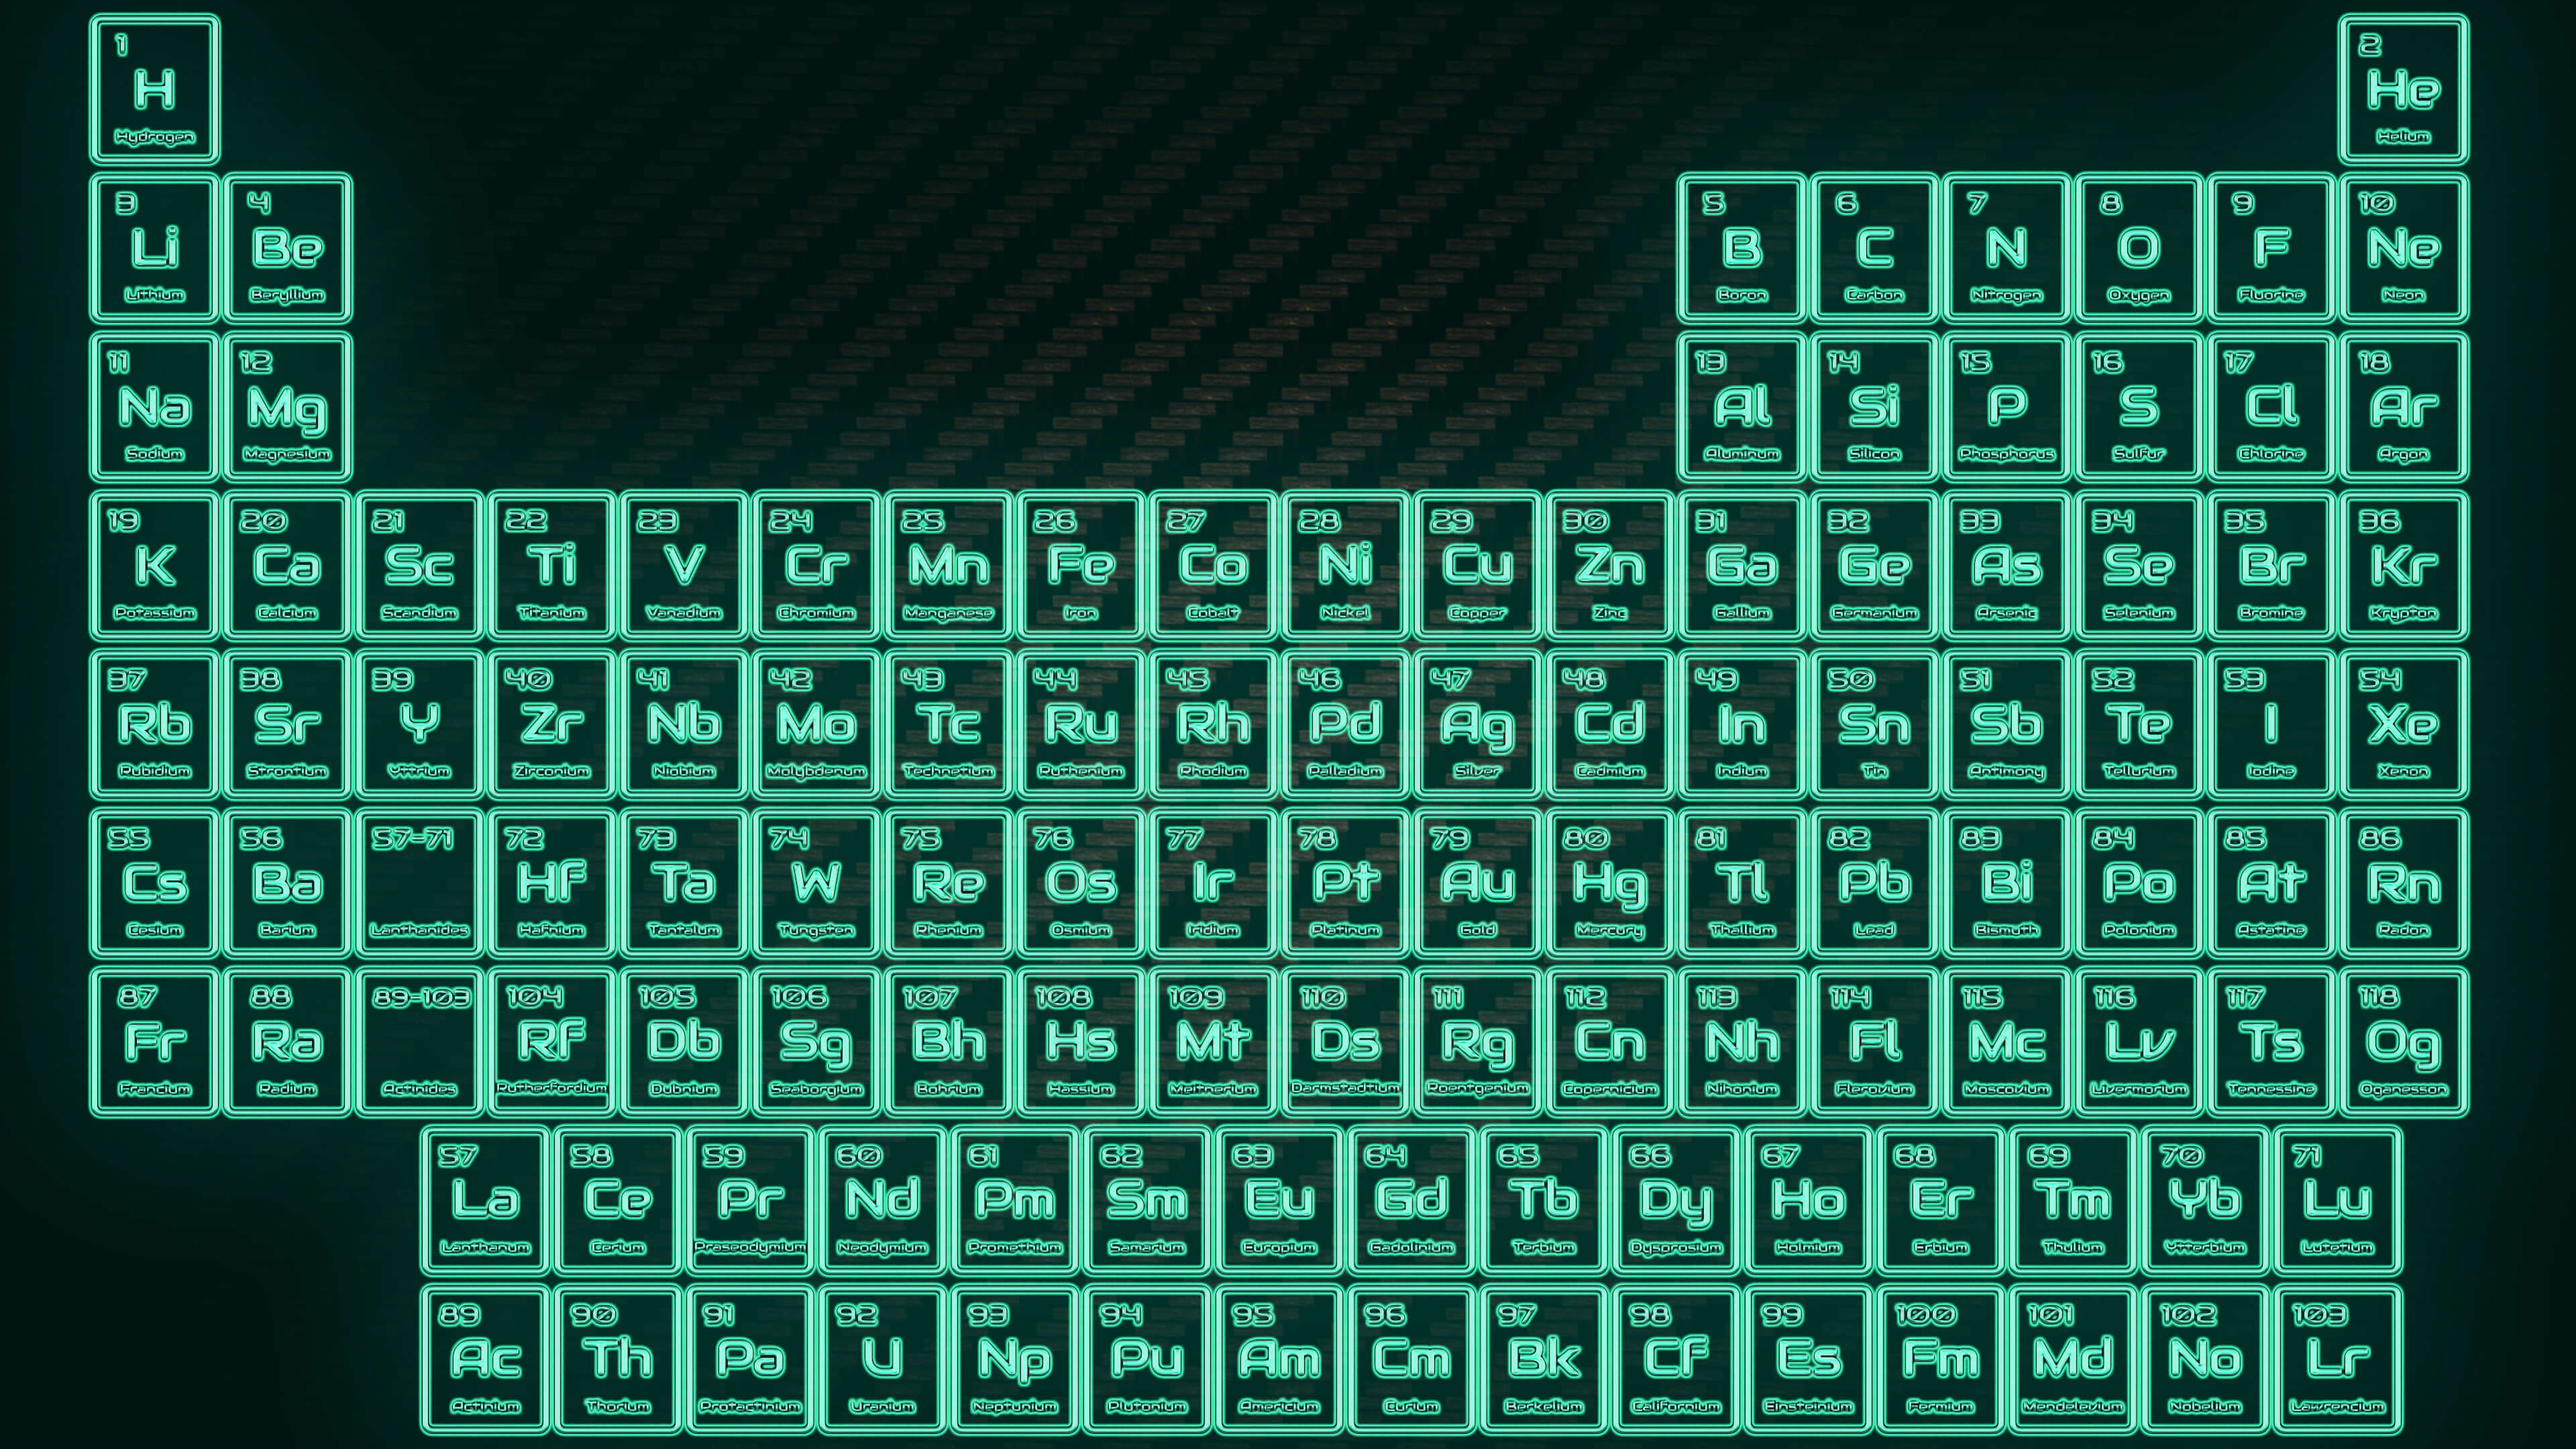 Tritium neon glowing tube periodic table wallpaper science notes tritium neon glowing tube periodic table wallpaper gamestrikefo Image collections